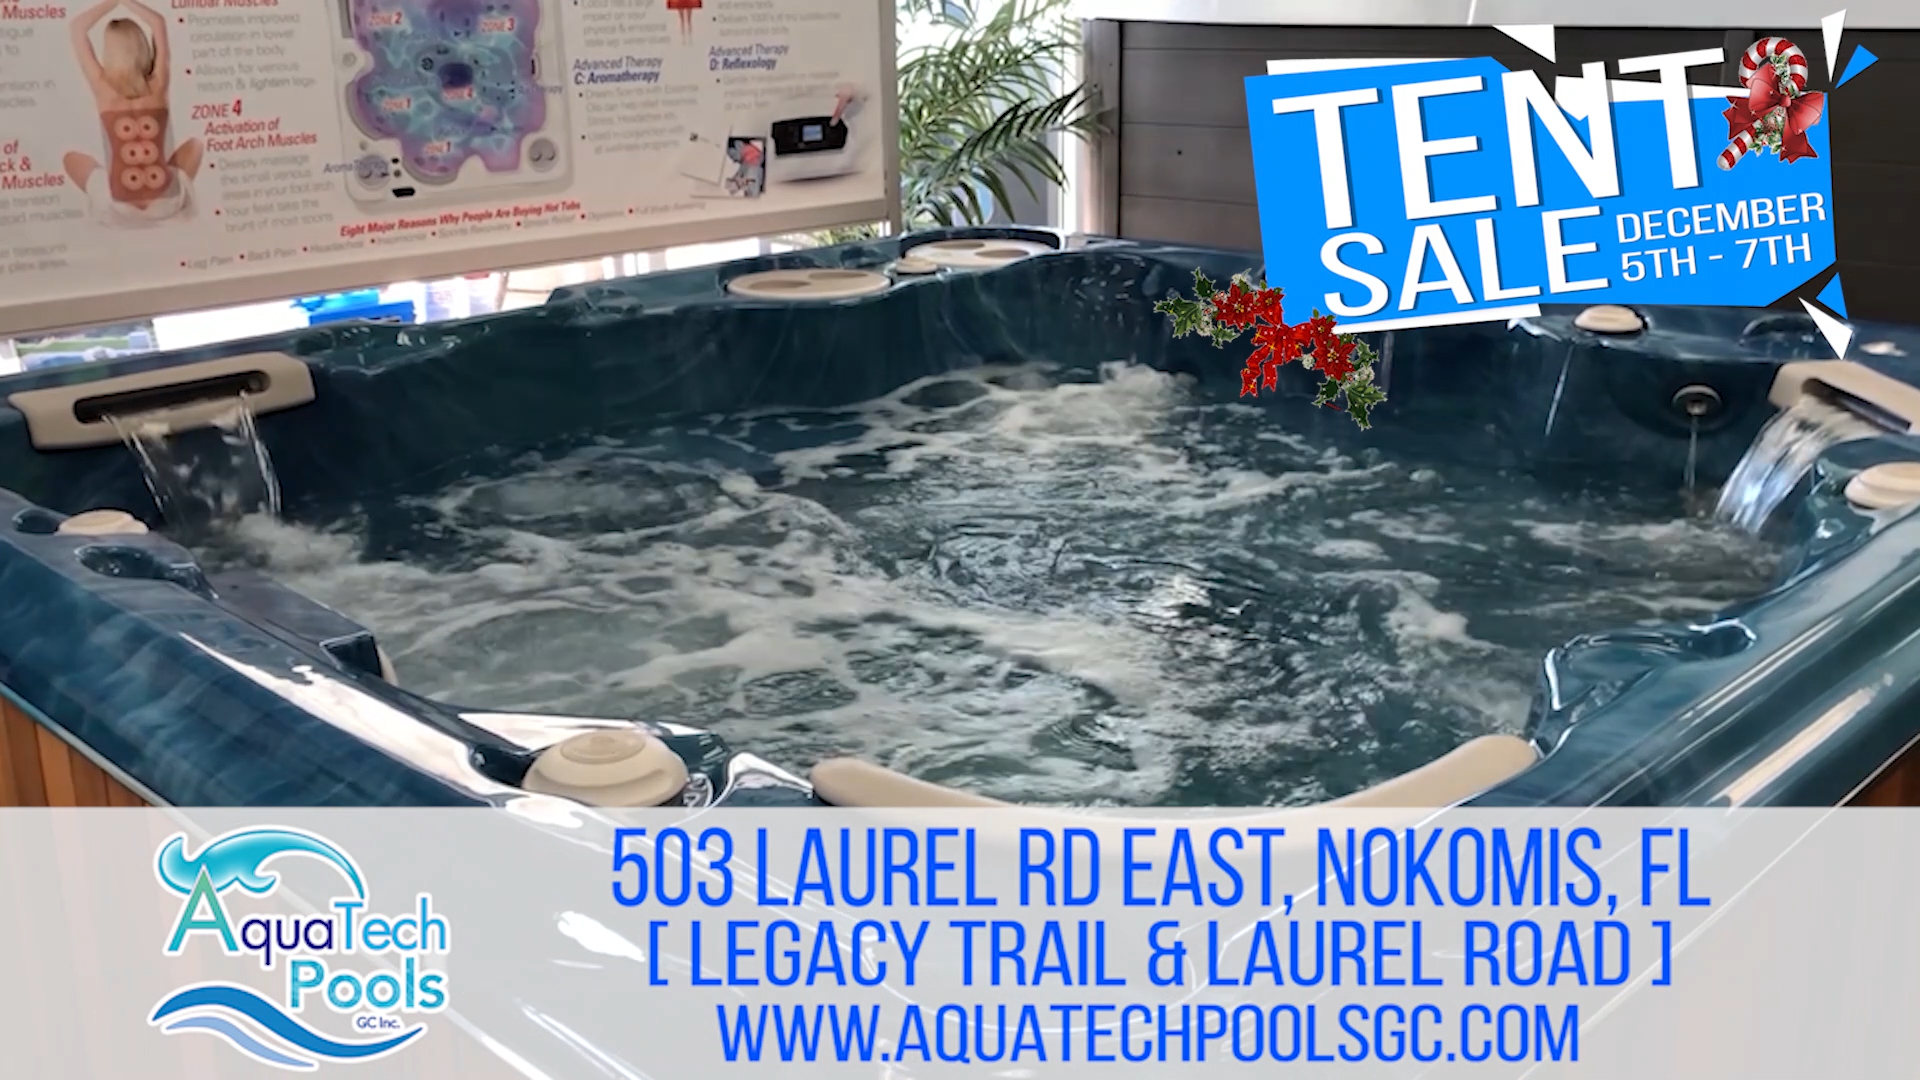 Holiday Tent Sale - hot tubs, patio furniture, pool pumps, heaters